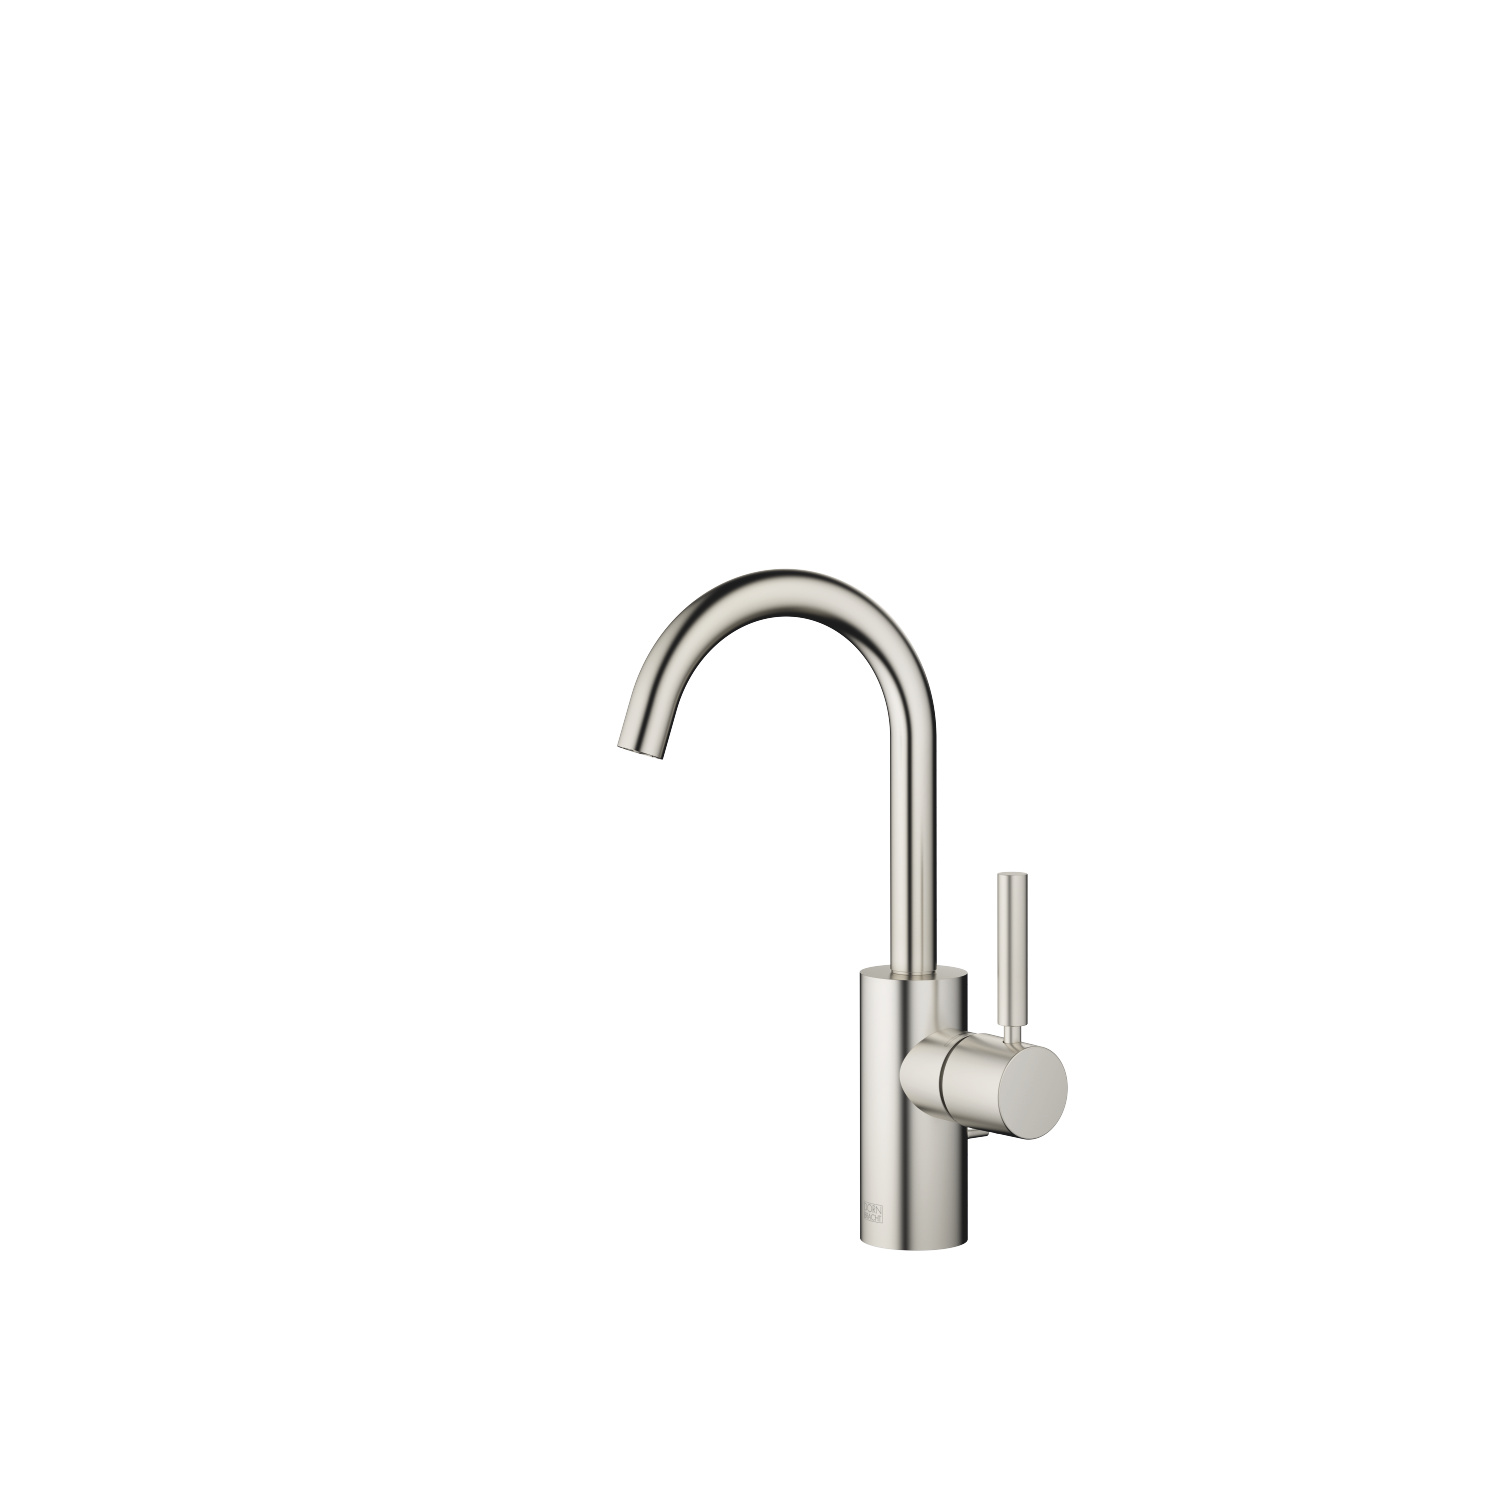 Single-lever lavatory mixer with drain - platinum matte - 33 510 661-06 0010